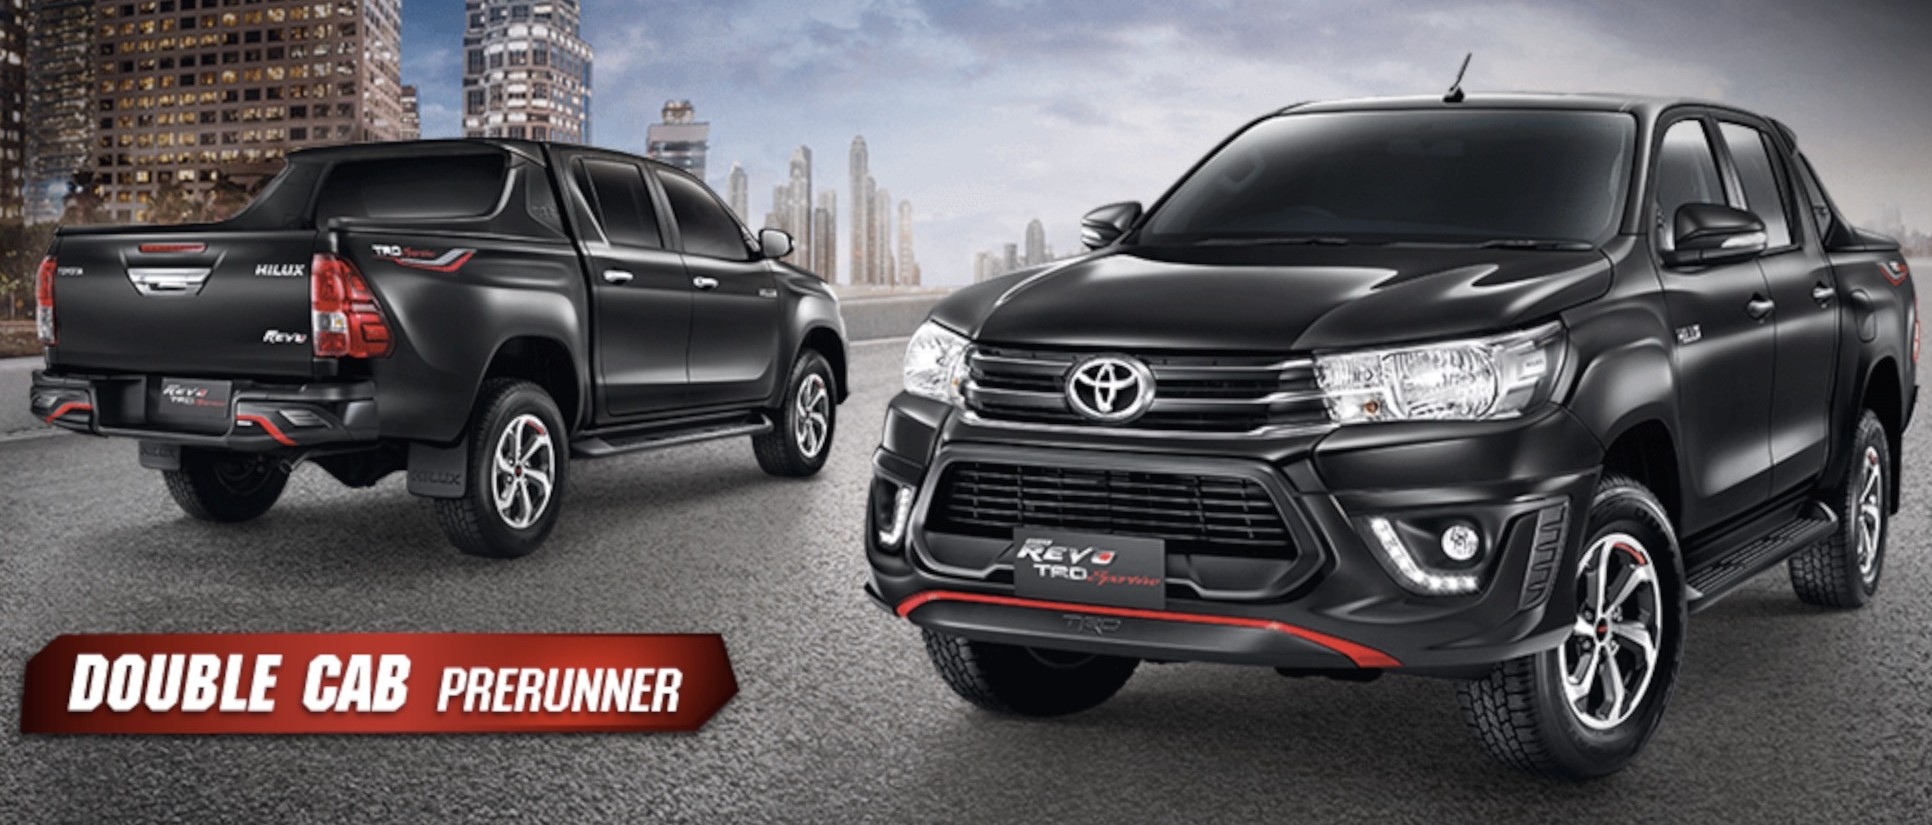 new yaris trd sportivo manual all camry review toyota hilux introduced in bangkok